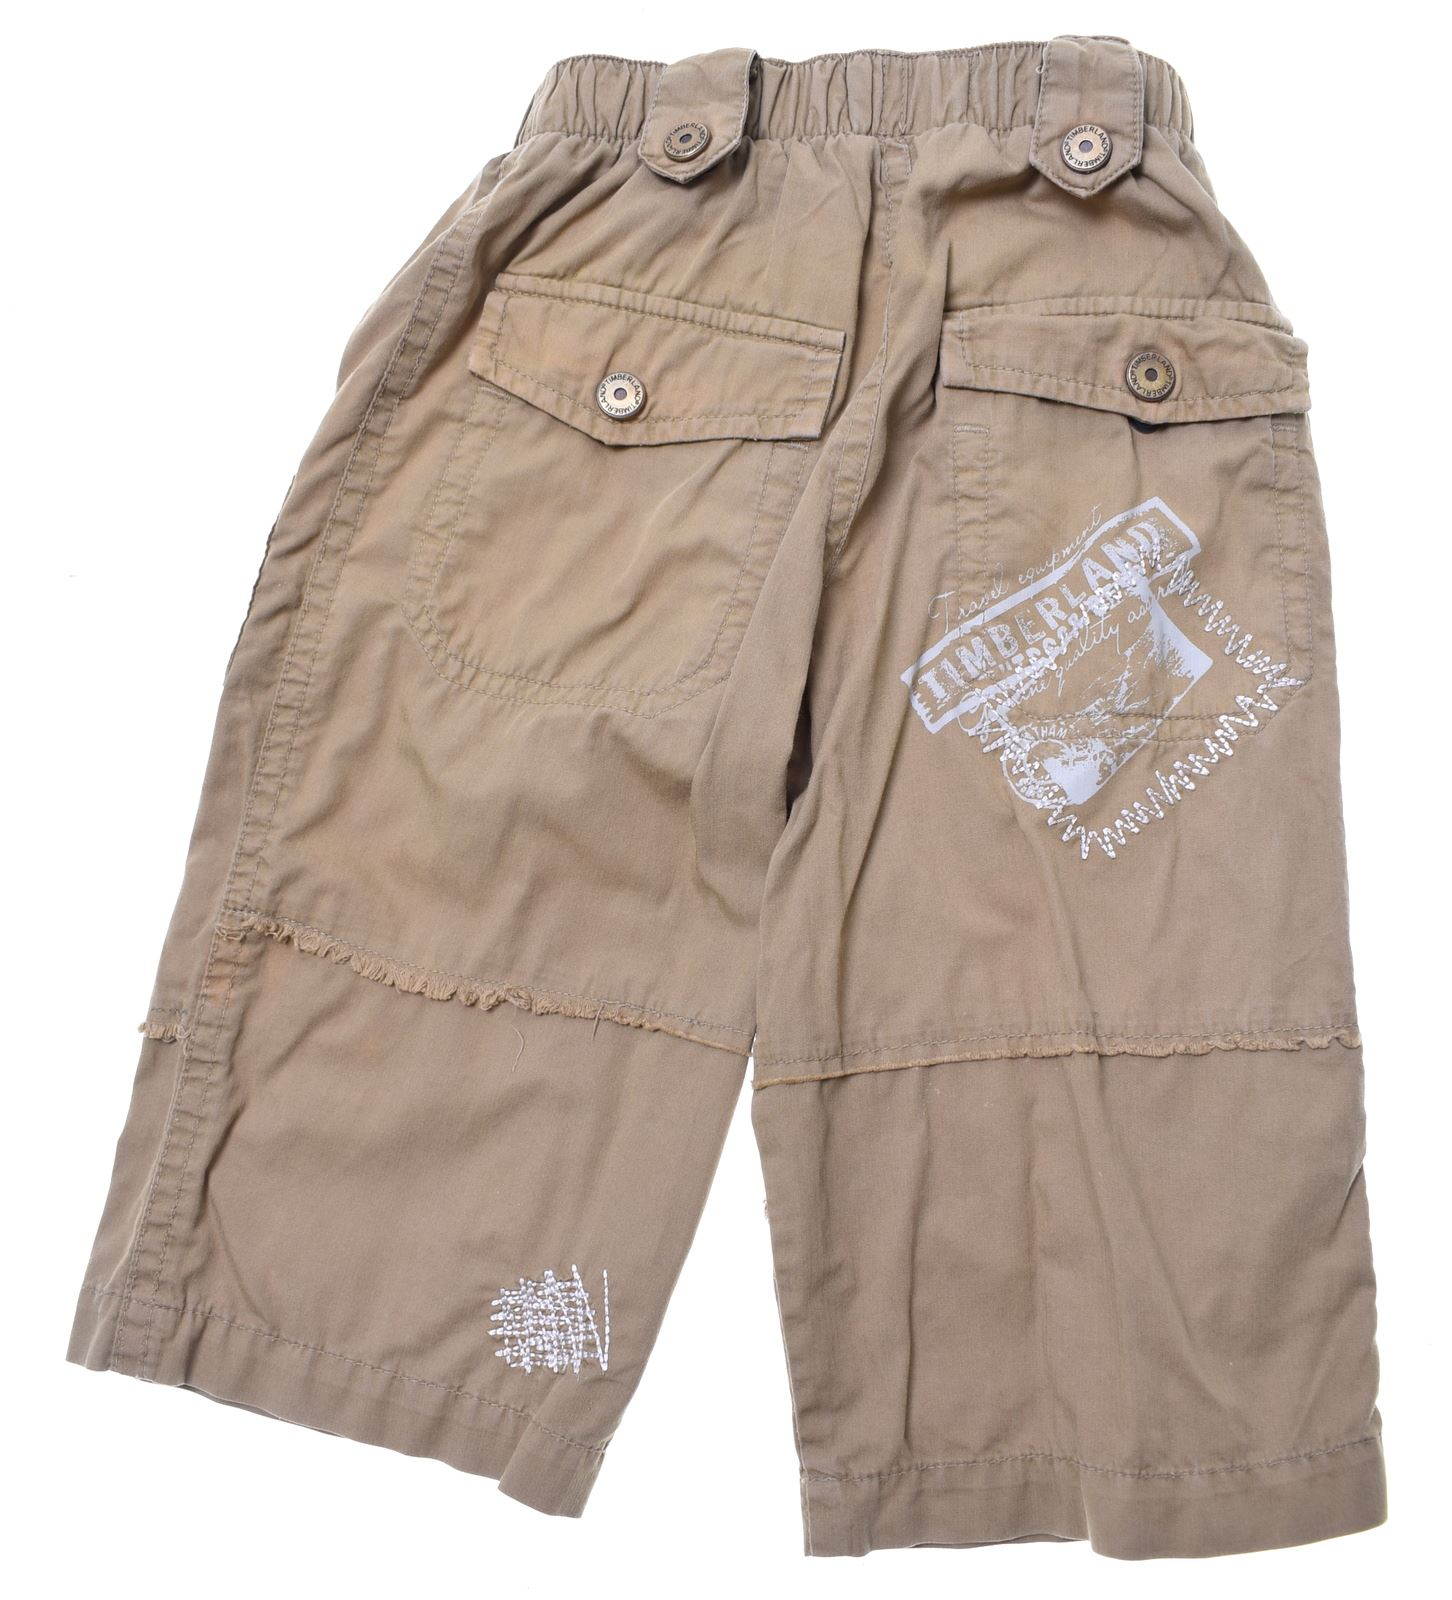 Baby & Toddler Clothing Clothing, Shoes & Accessories Baby Boys Timberland Trousers Bottoms 12 Months Bnwt